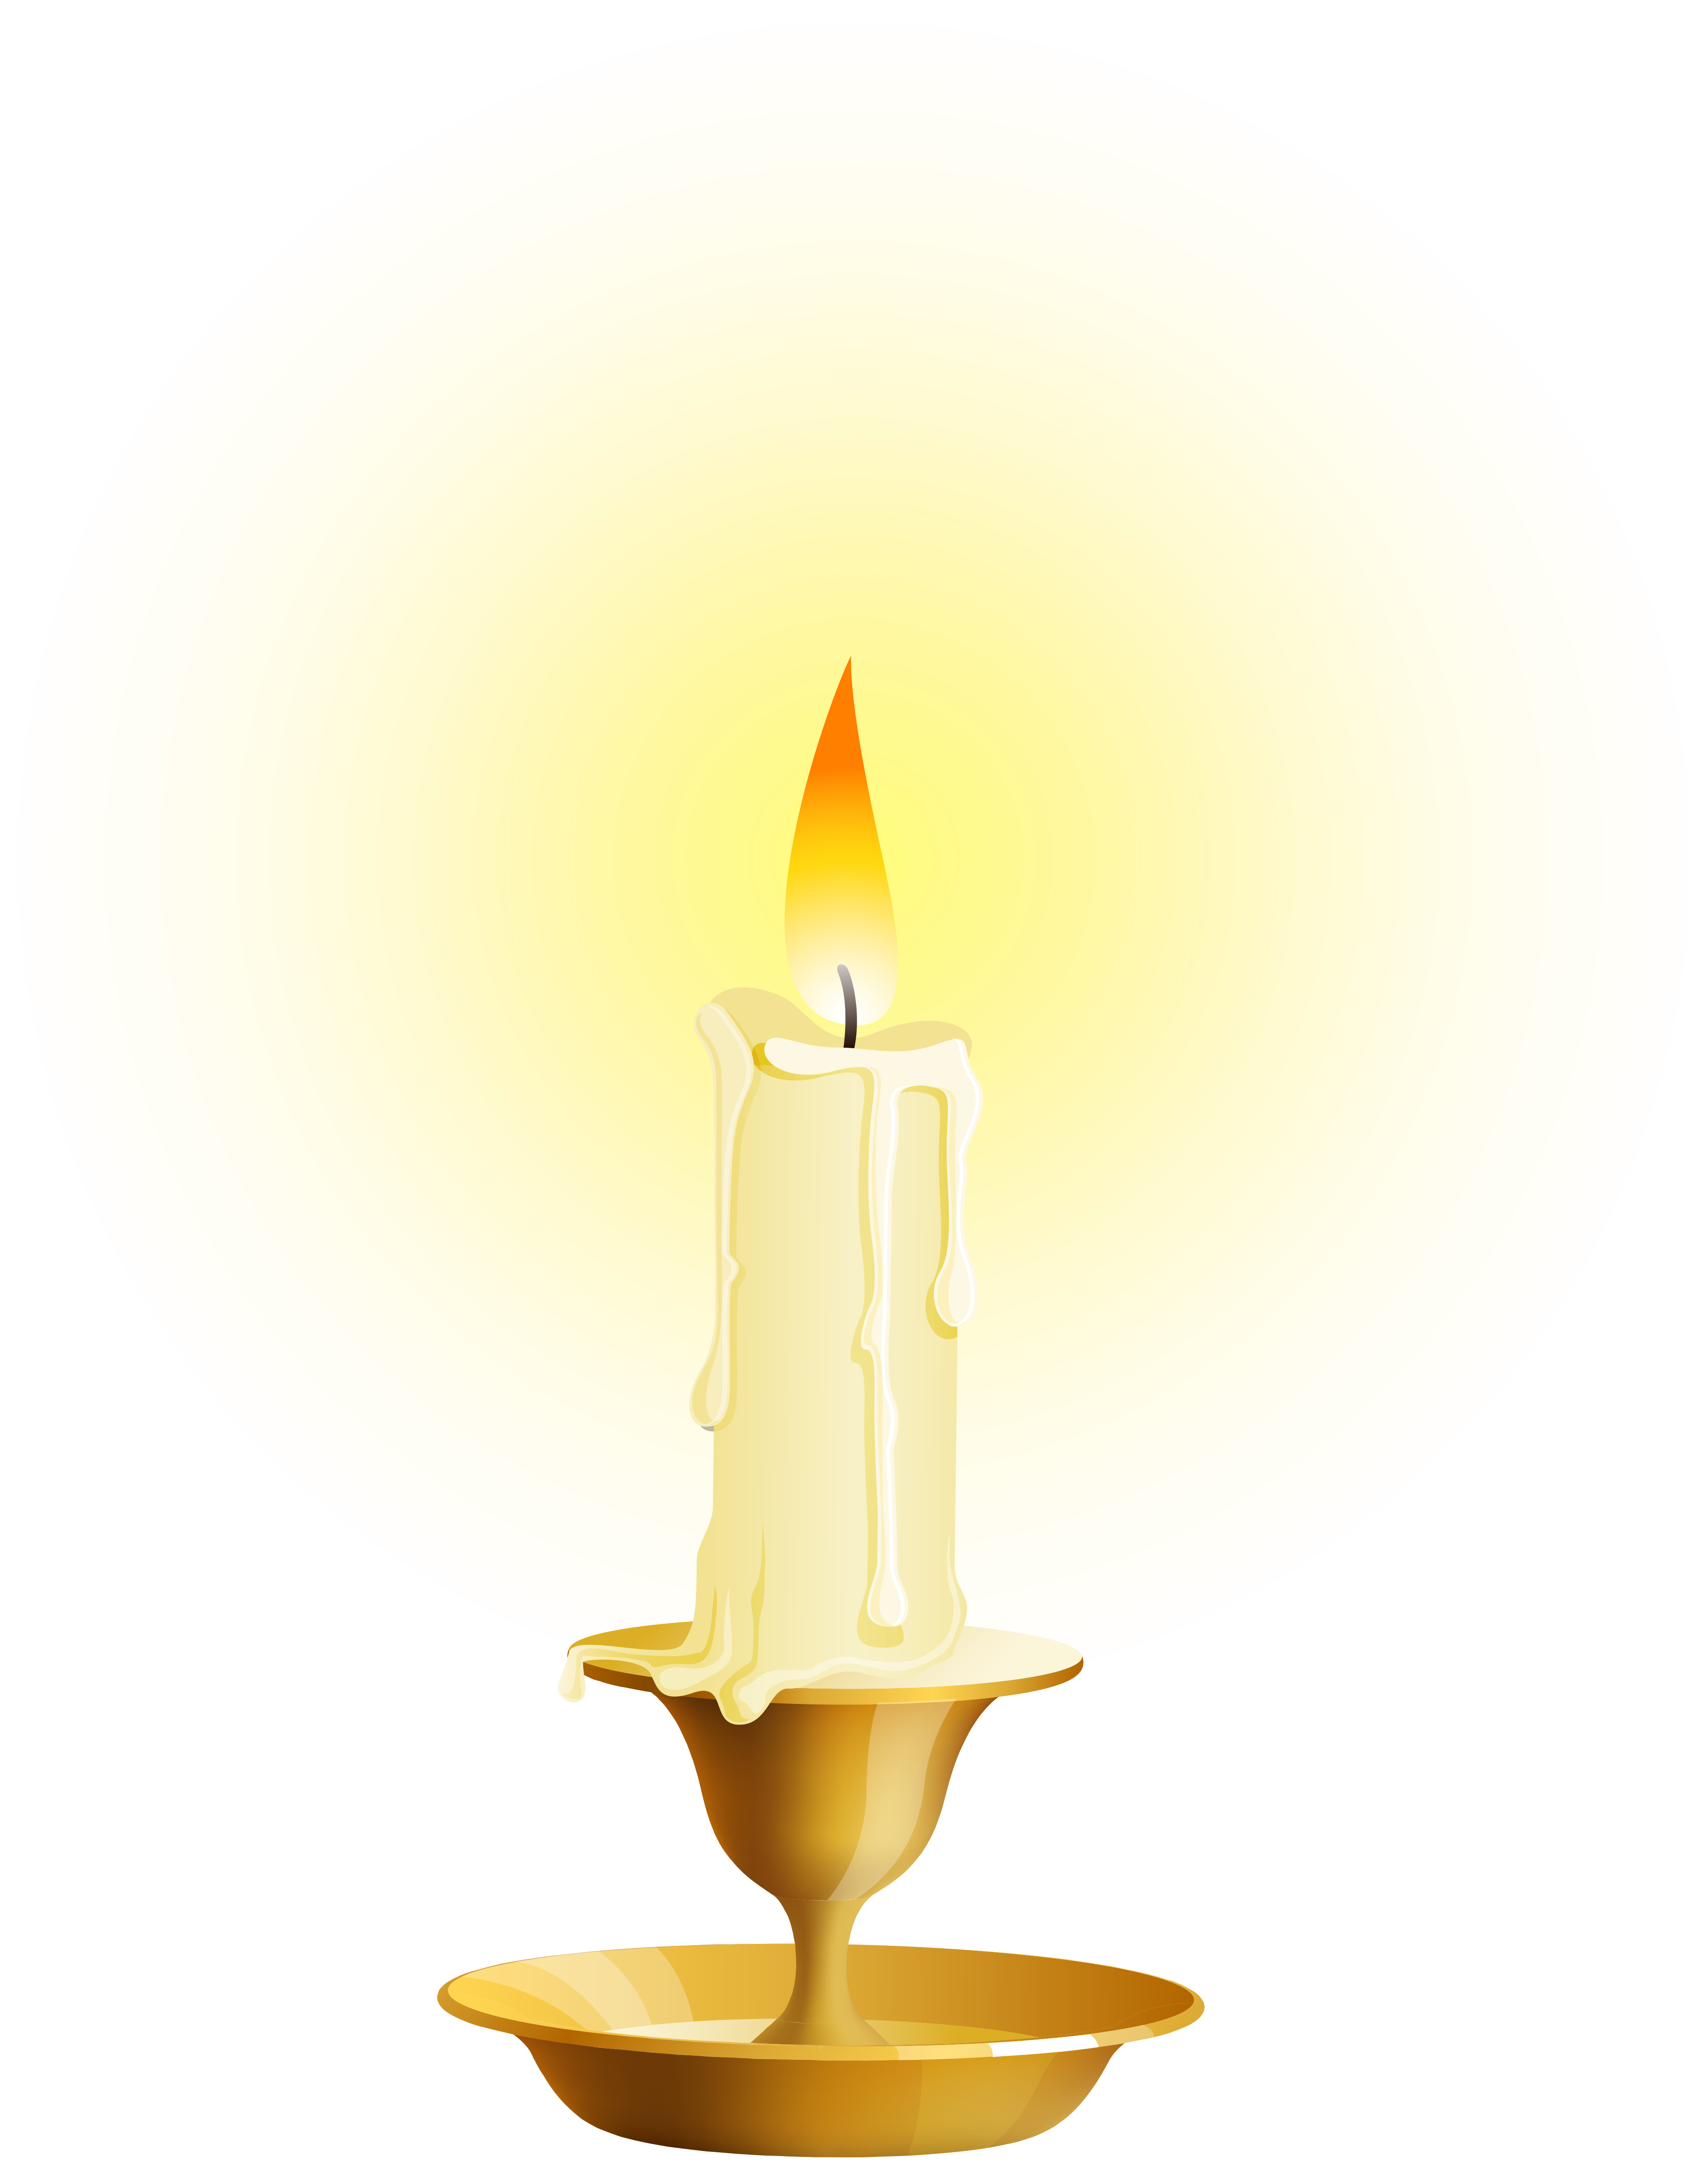 White png clip art. Clipart books candle